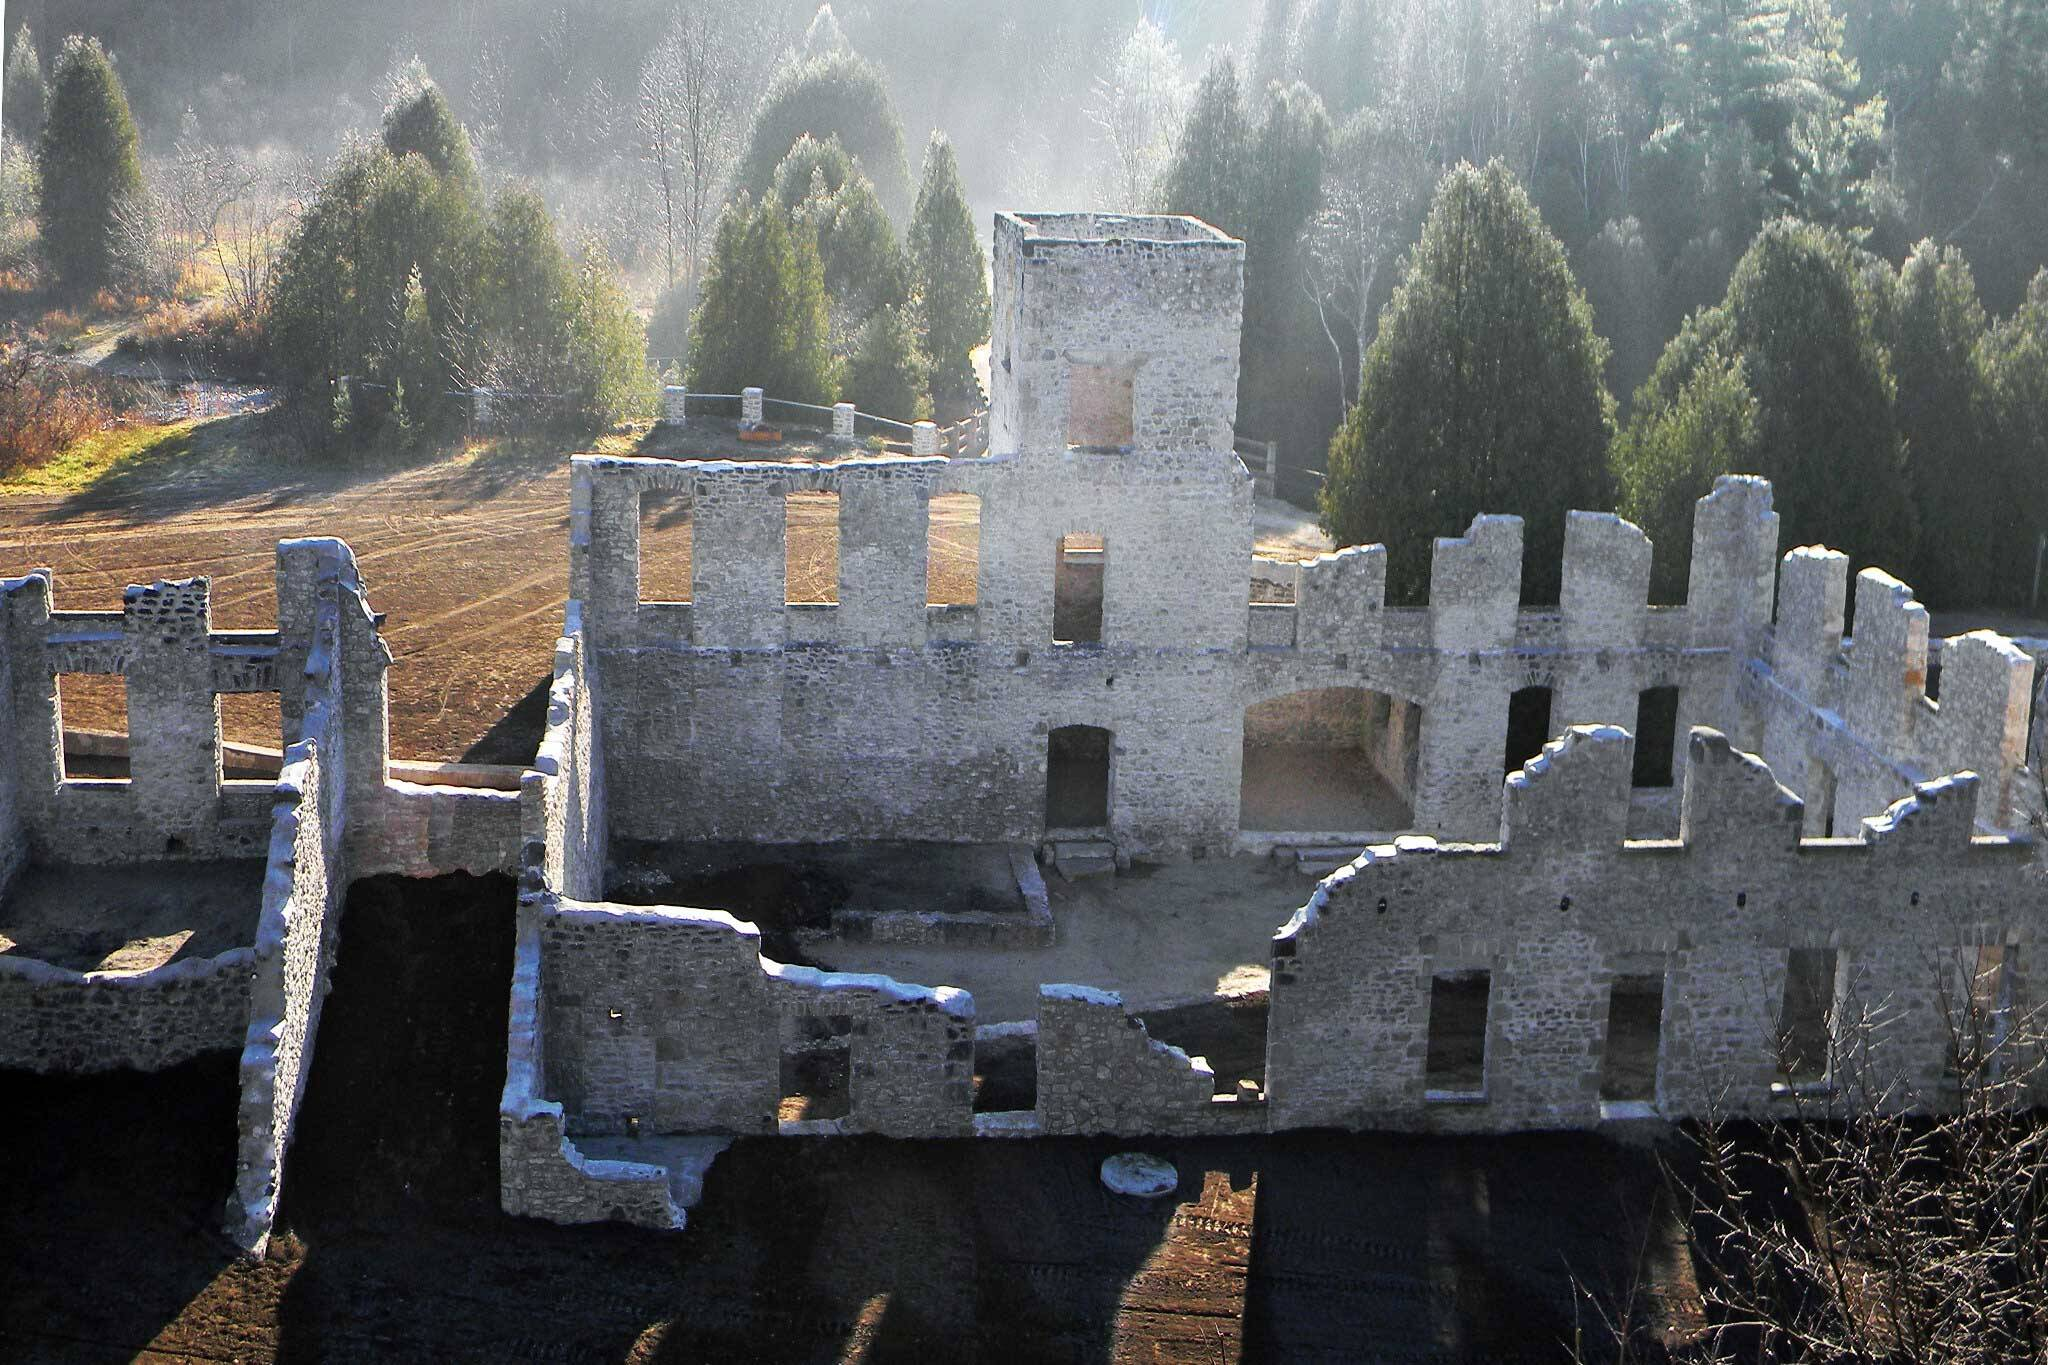 these epic ruins are just one hour from toronto. Black Bedroom Furniture Sets. Home Design Ideas